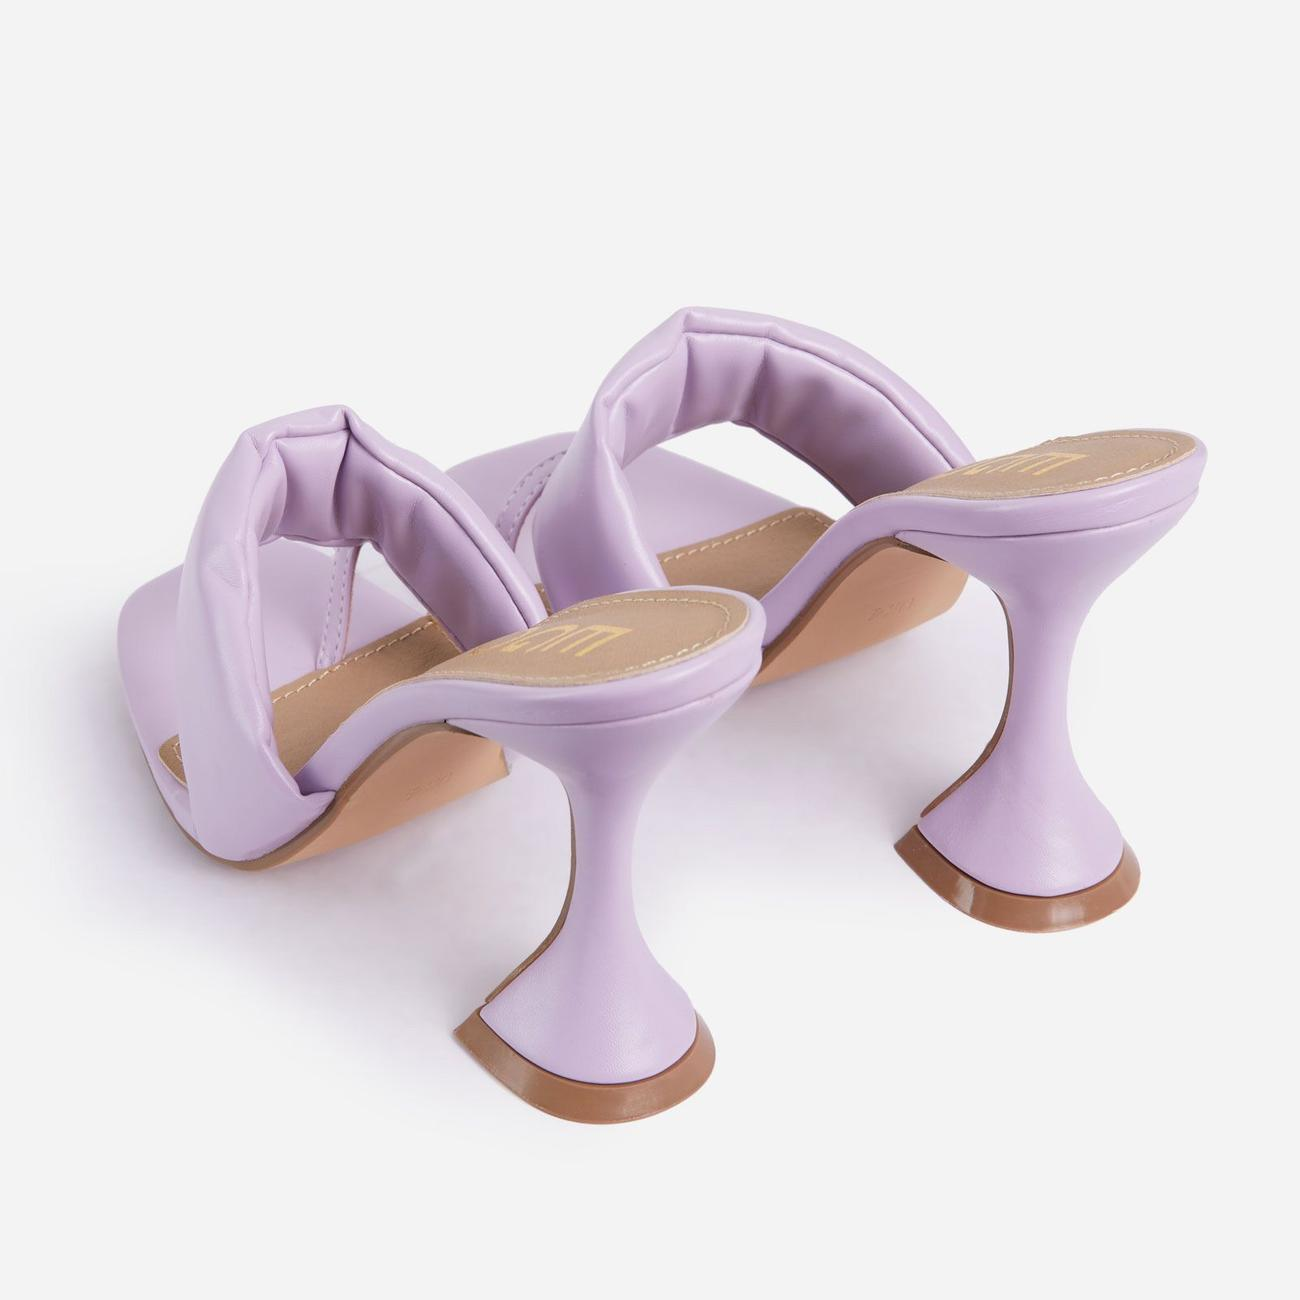 You-Wish Square Toe Padded Pyramid Heel Mule In Lilac Faux Leather Image 3